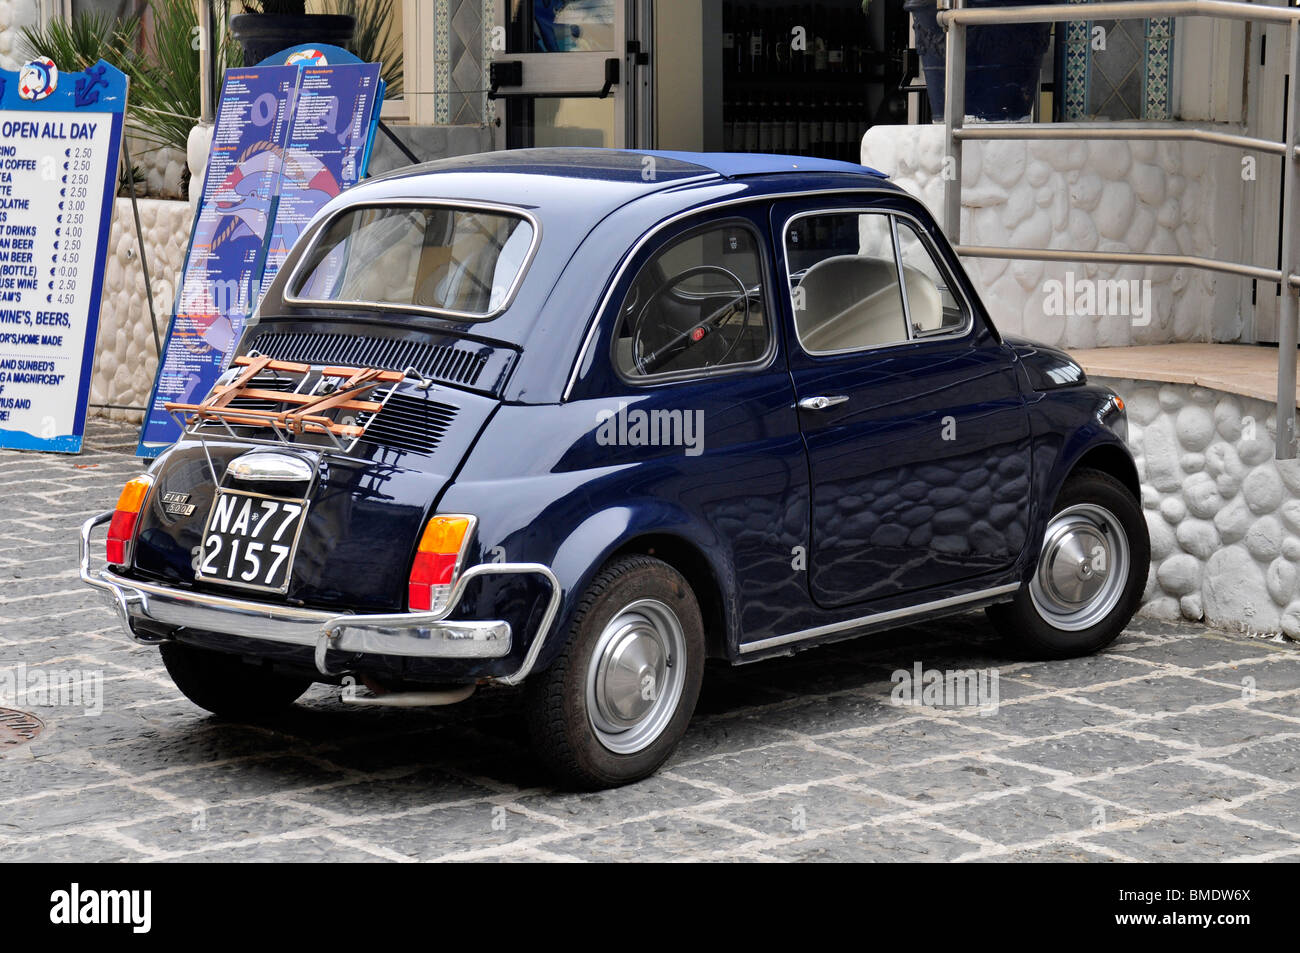 classic fiat 500 car italy stock photo 29808658 alamy. Black Bedroom Furniture Sets. Home Design Ideas